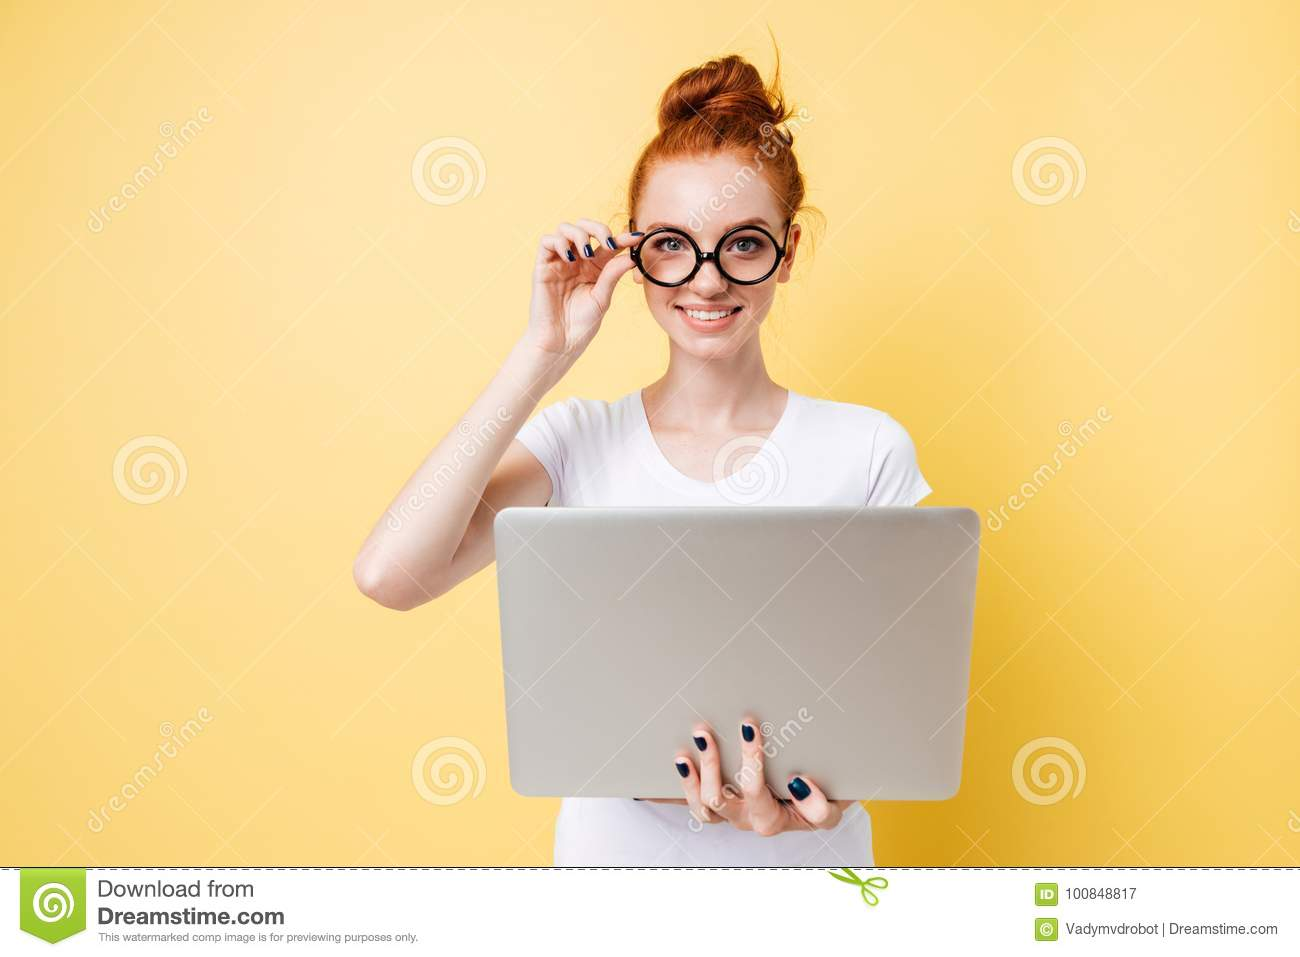 Pleased ginger woman in eeglasses holding laptop computer